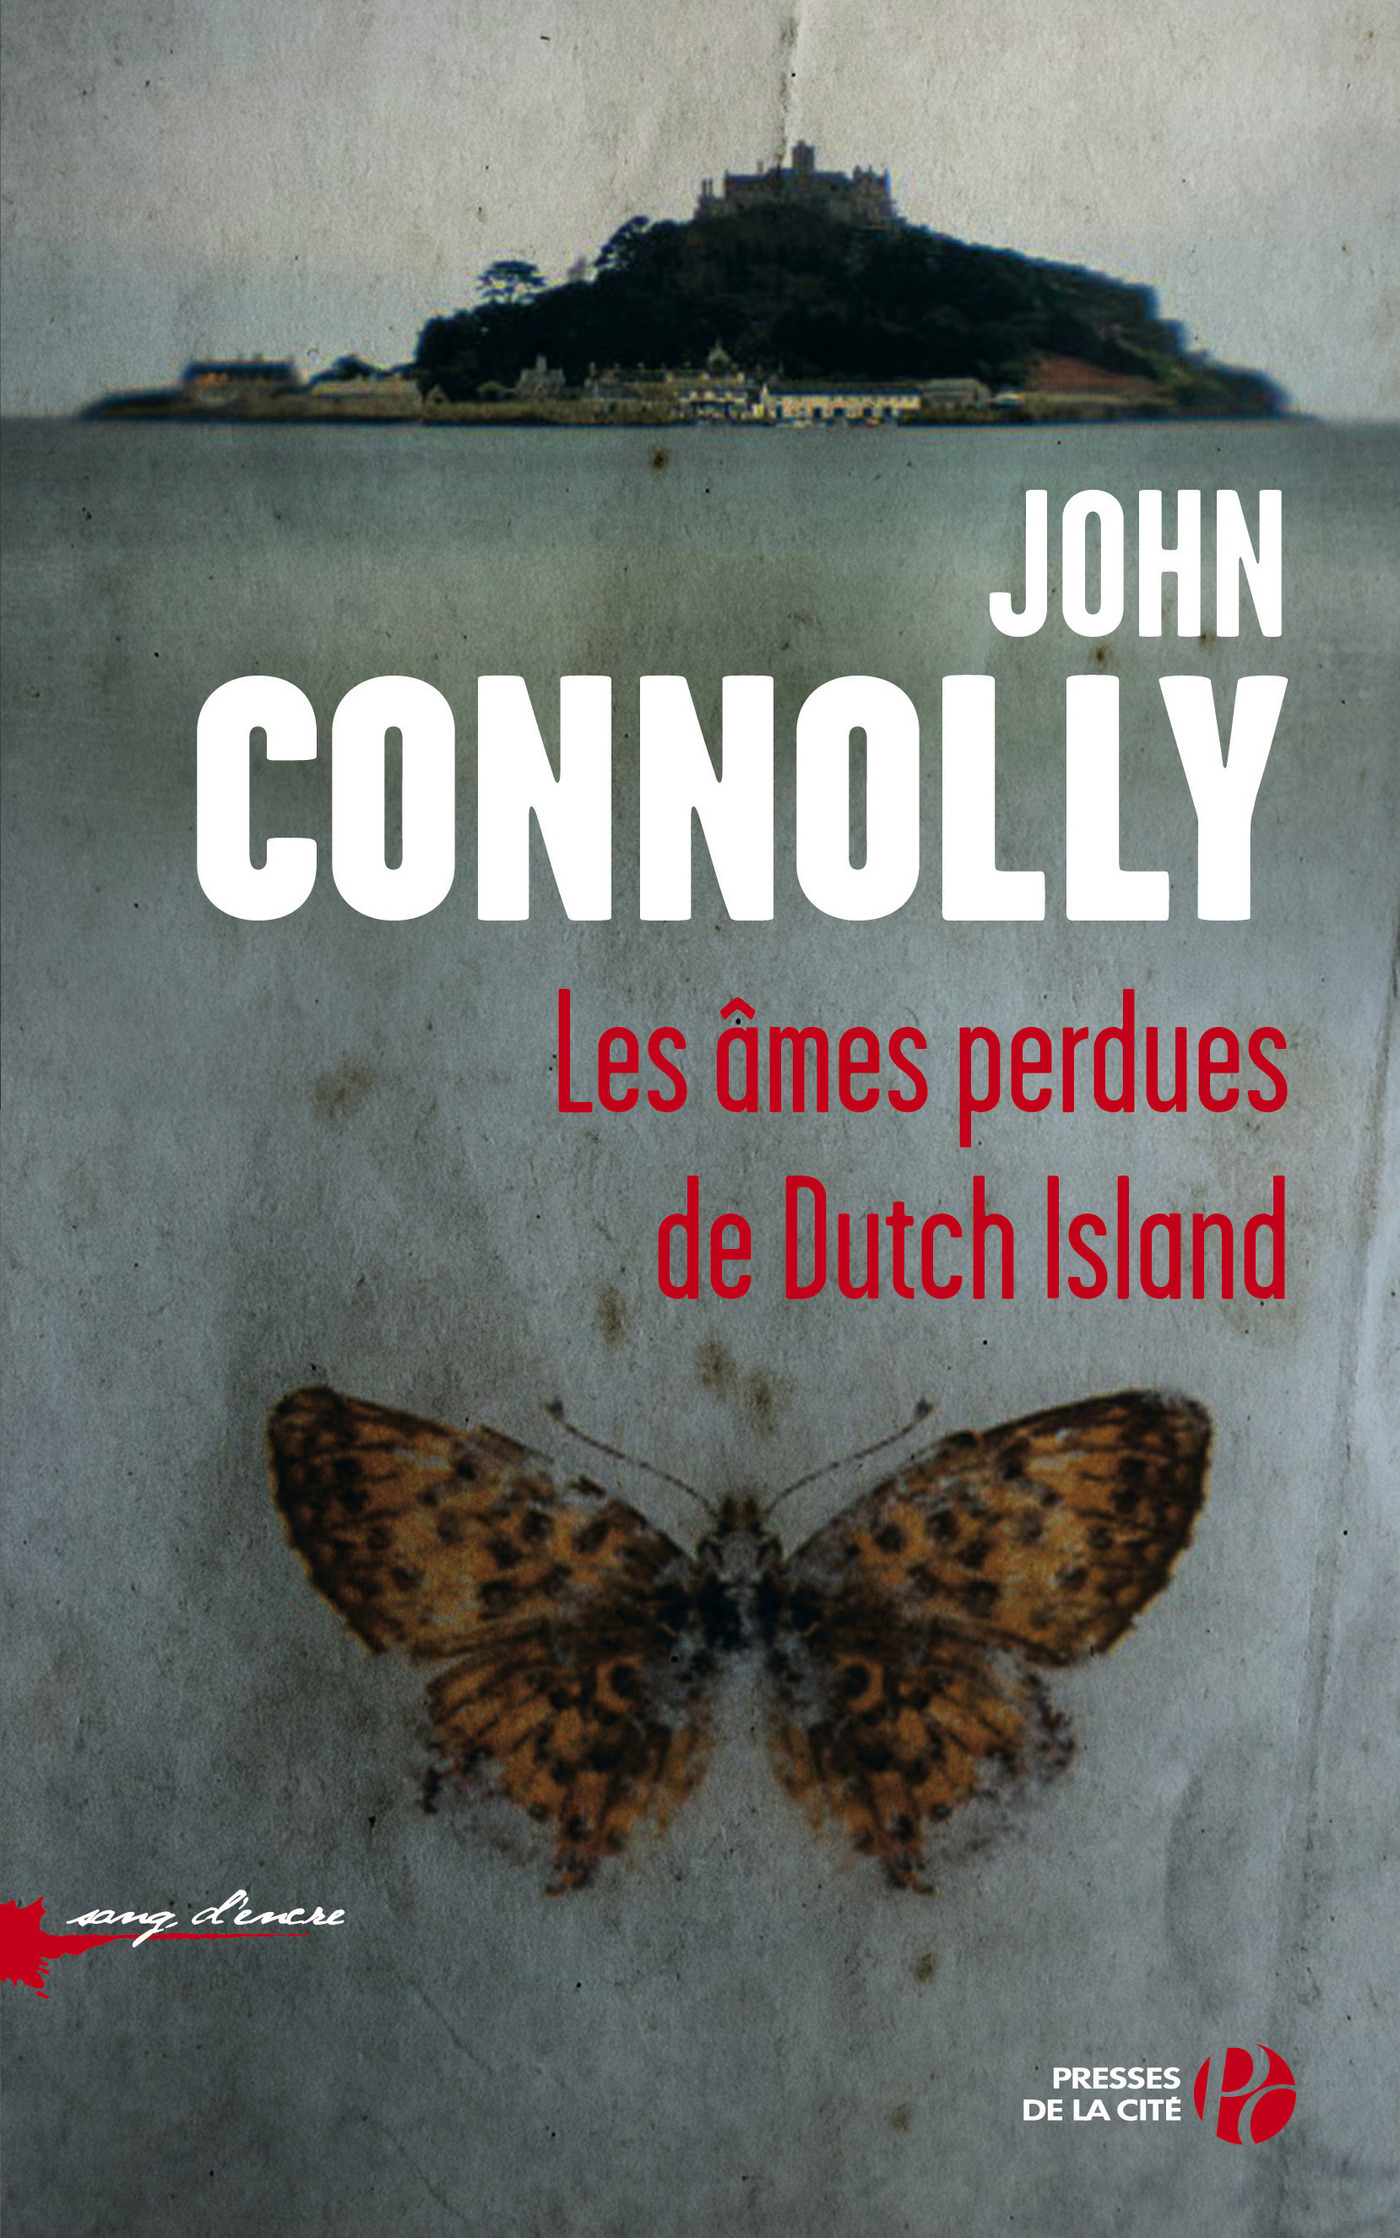 Les âmes perdues de Dutch Island